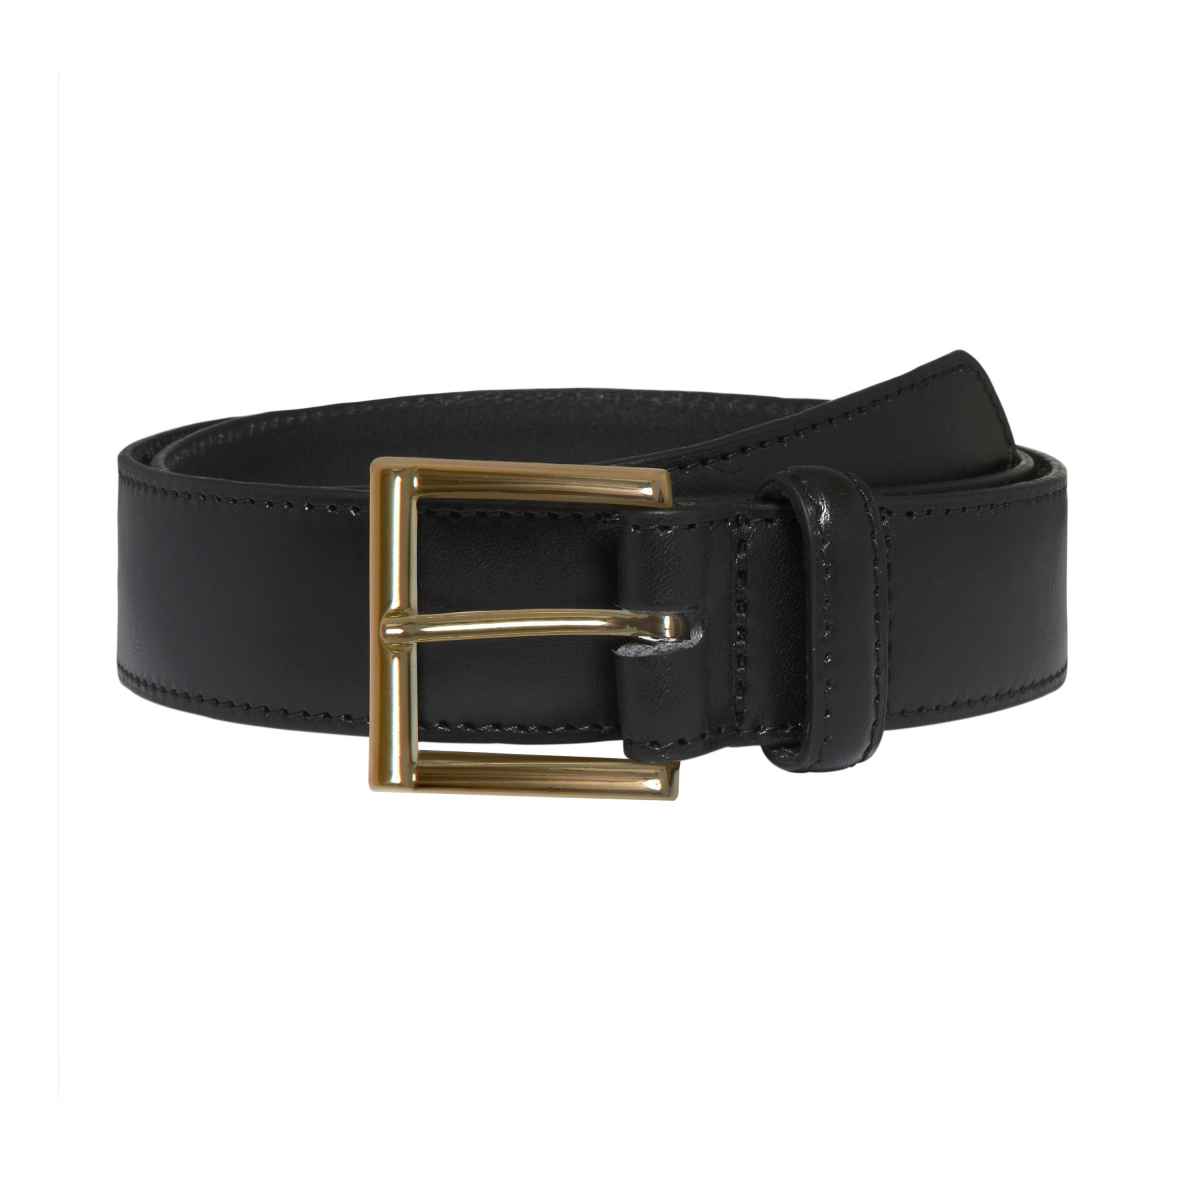 From leather and waist belts, to obi and elastic belts. your browser is not supported. To use ASOS, we recommend using the latest versions of Chrome, Firefox, Safari or Internet Explorer Monki faux leather belt in black. $ Missguided circle belt in clear. $ ASOS DESIGN square and circle buckle belt in old gold. $